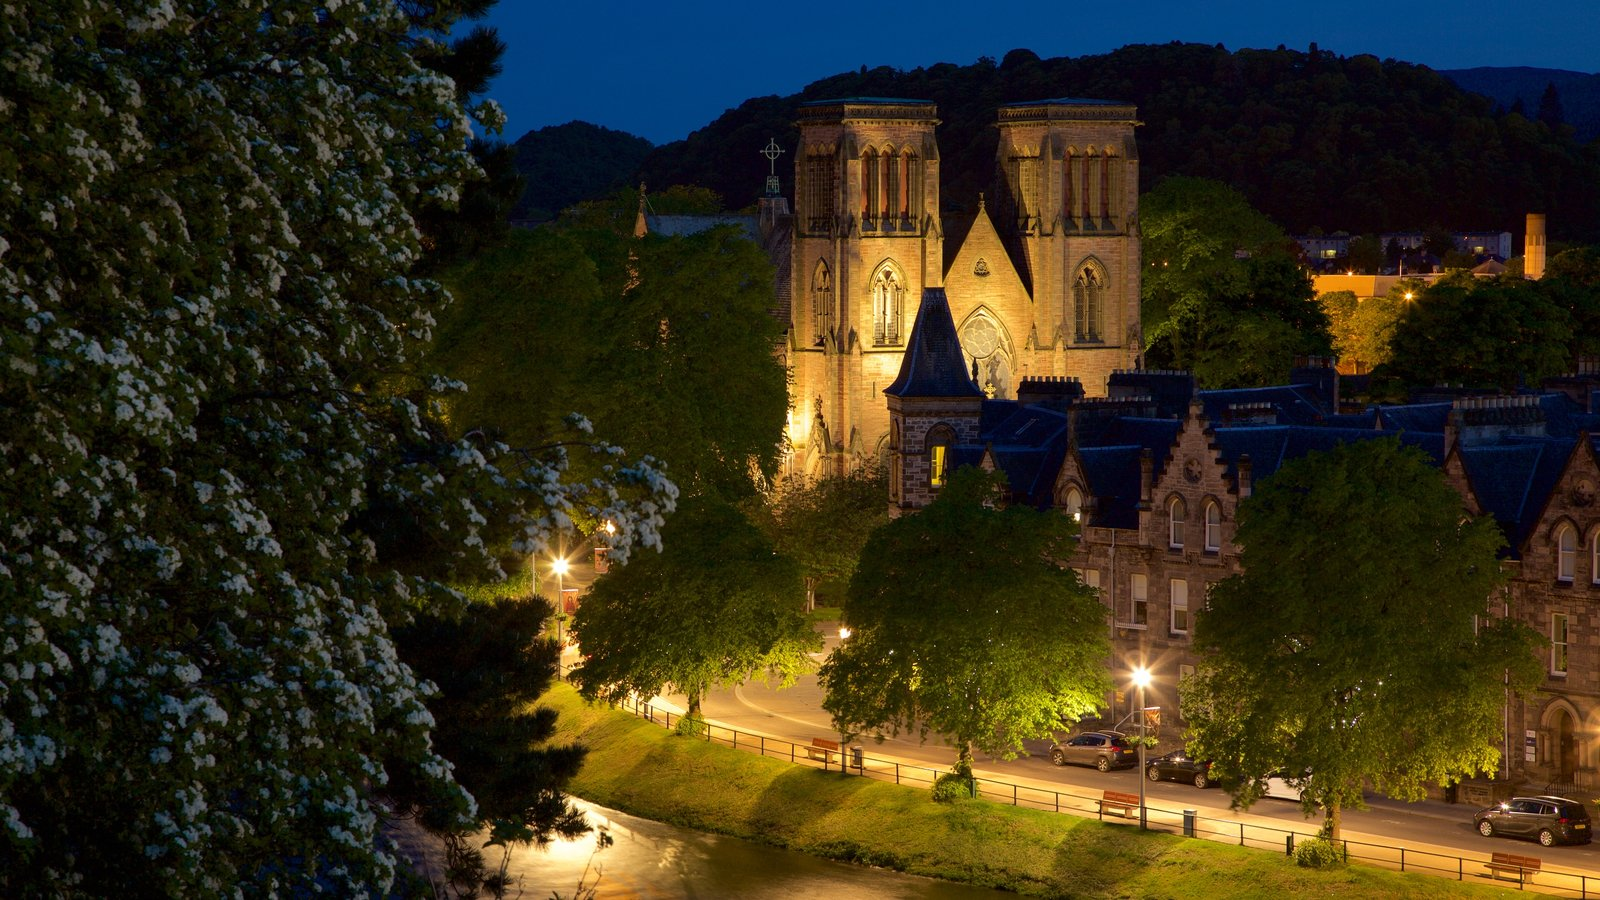 Inverness Cathedral featuring street scenes, night scenes and heritage architecture